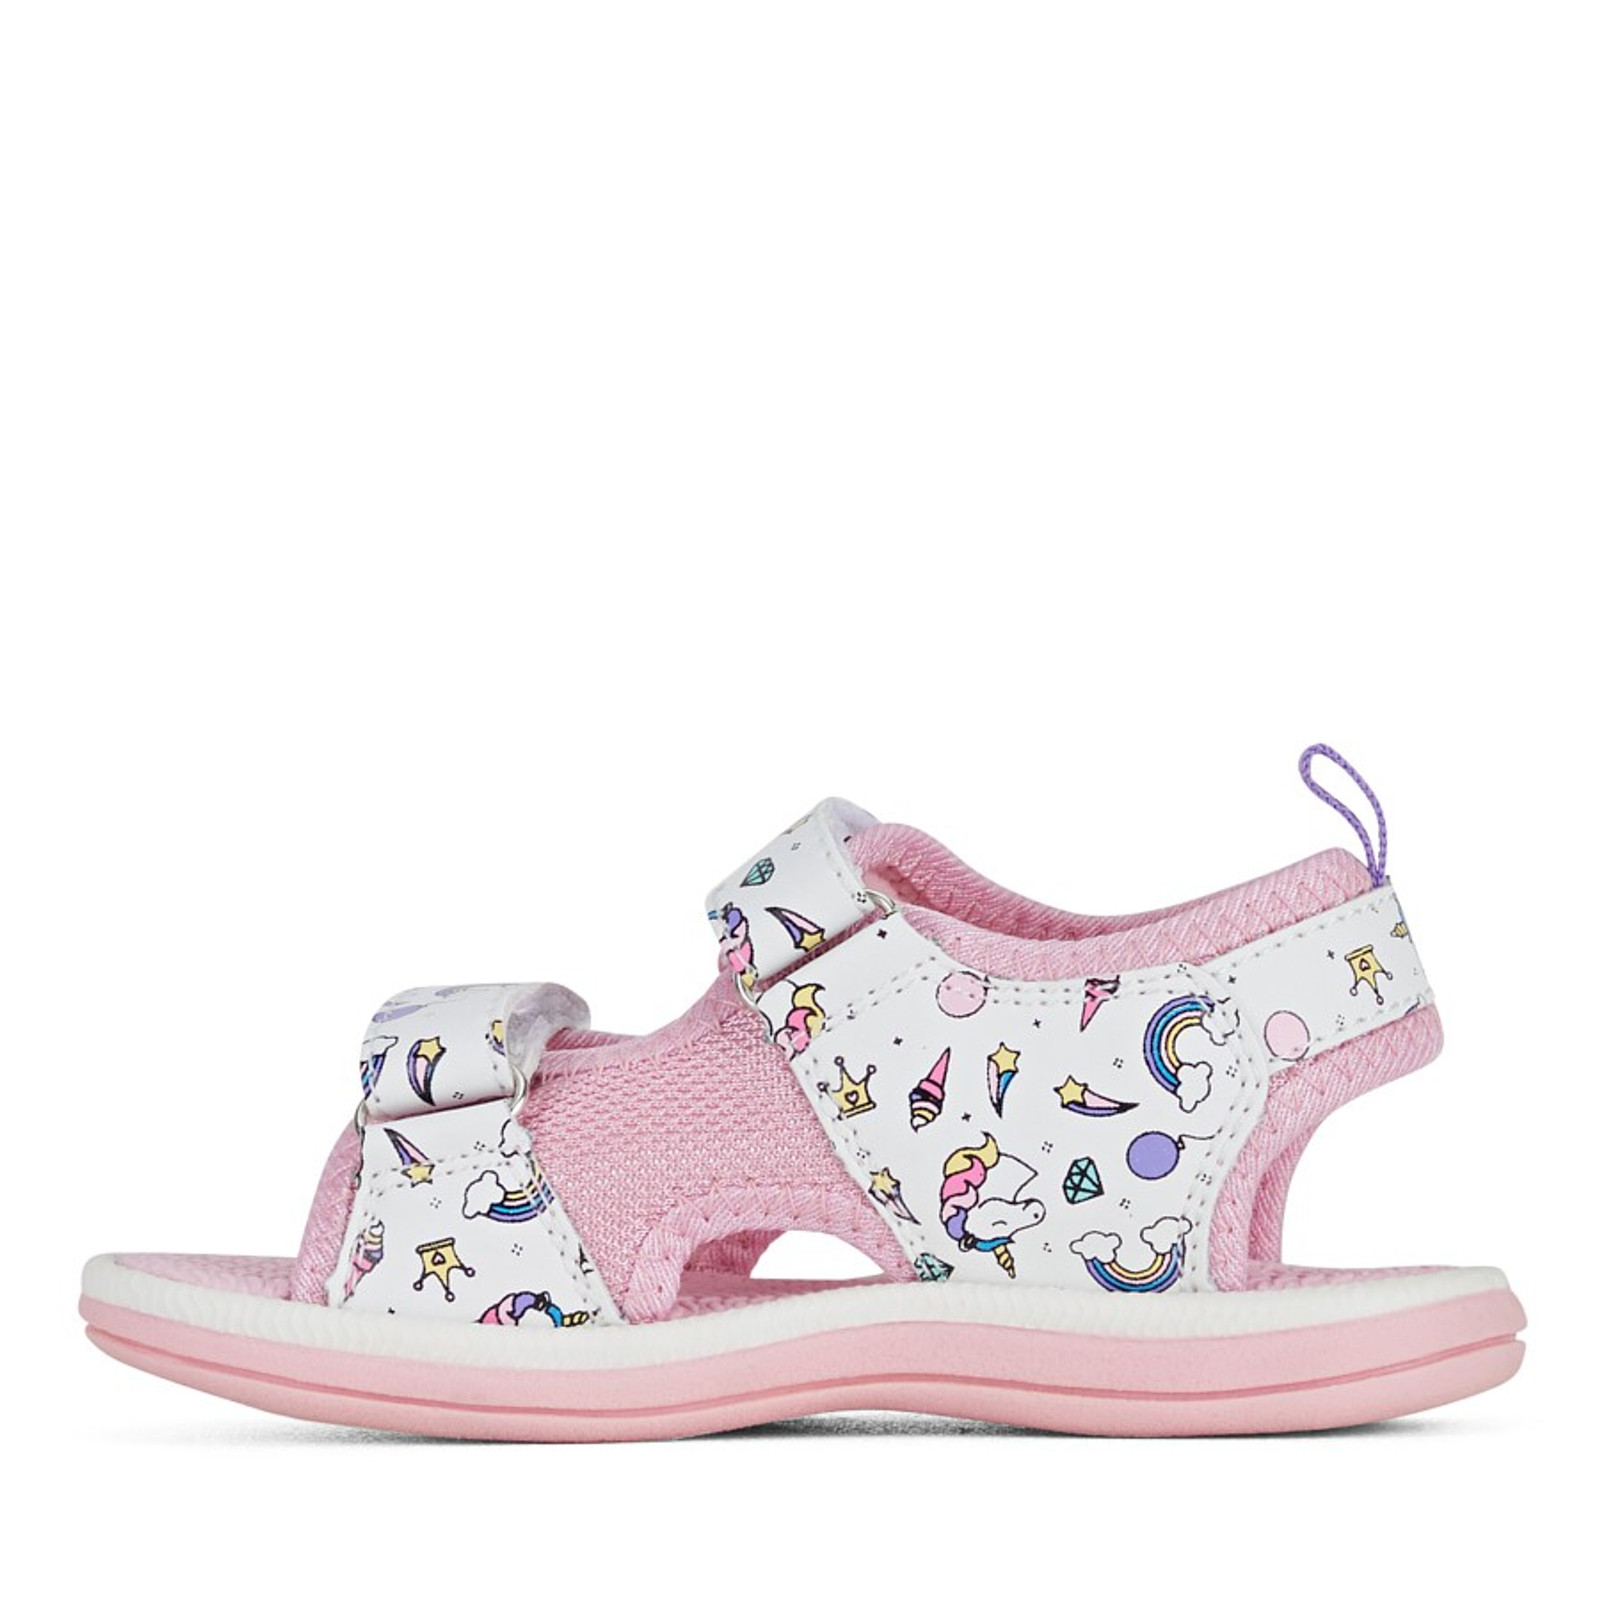 Clarks Girls FRIDA White/Pink